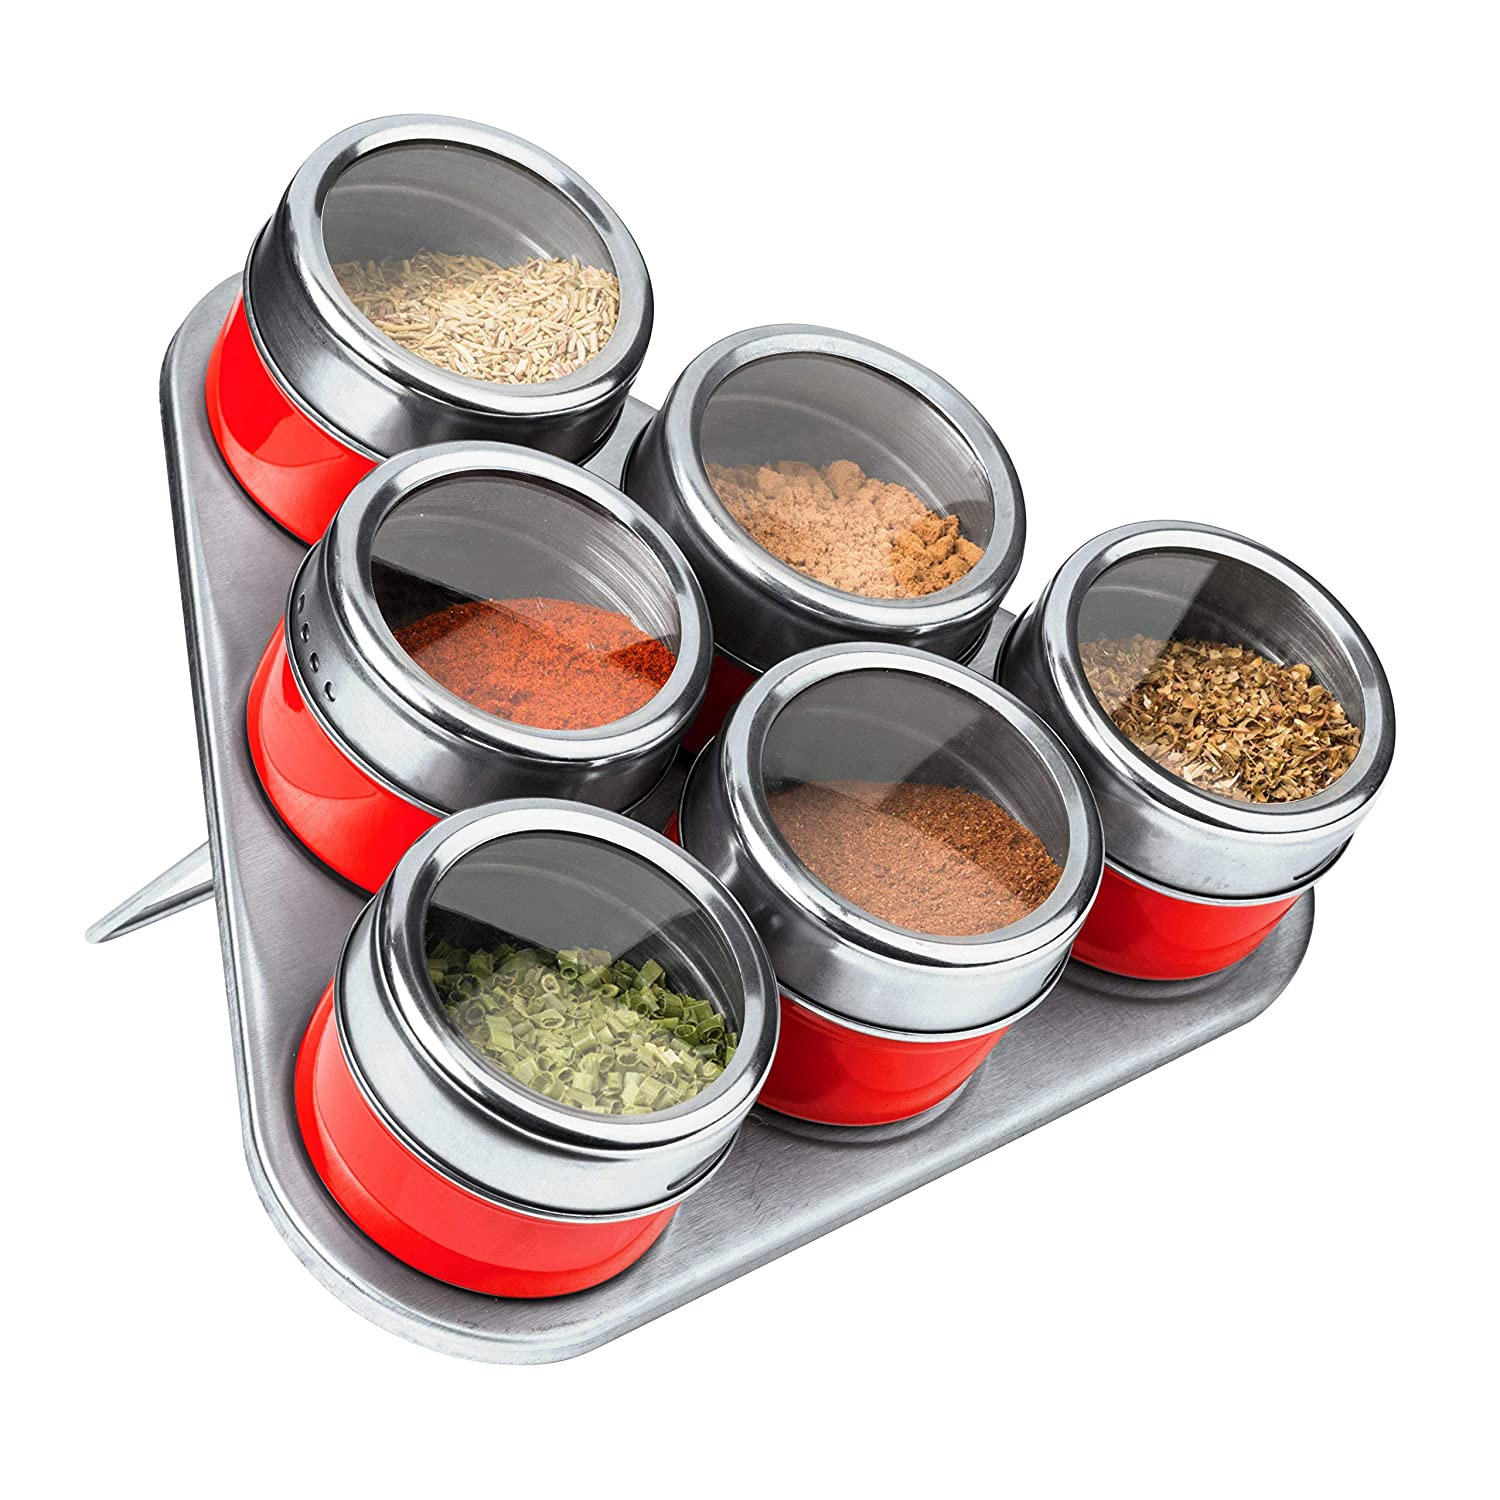 Hot Pink Premier Housewares Magnetic Tray with 6 Spice Jars